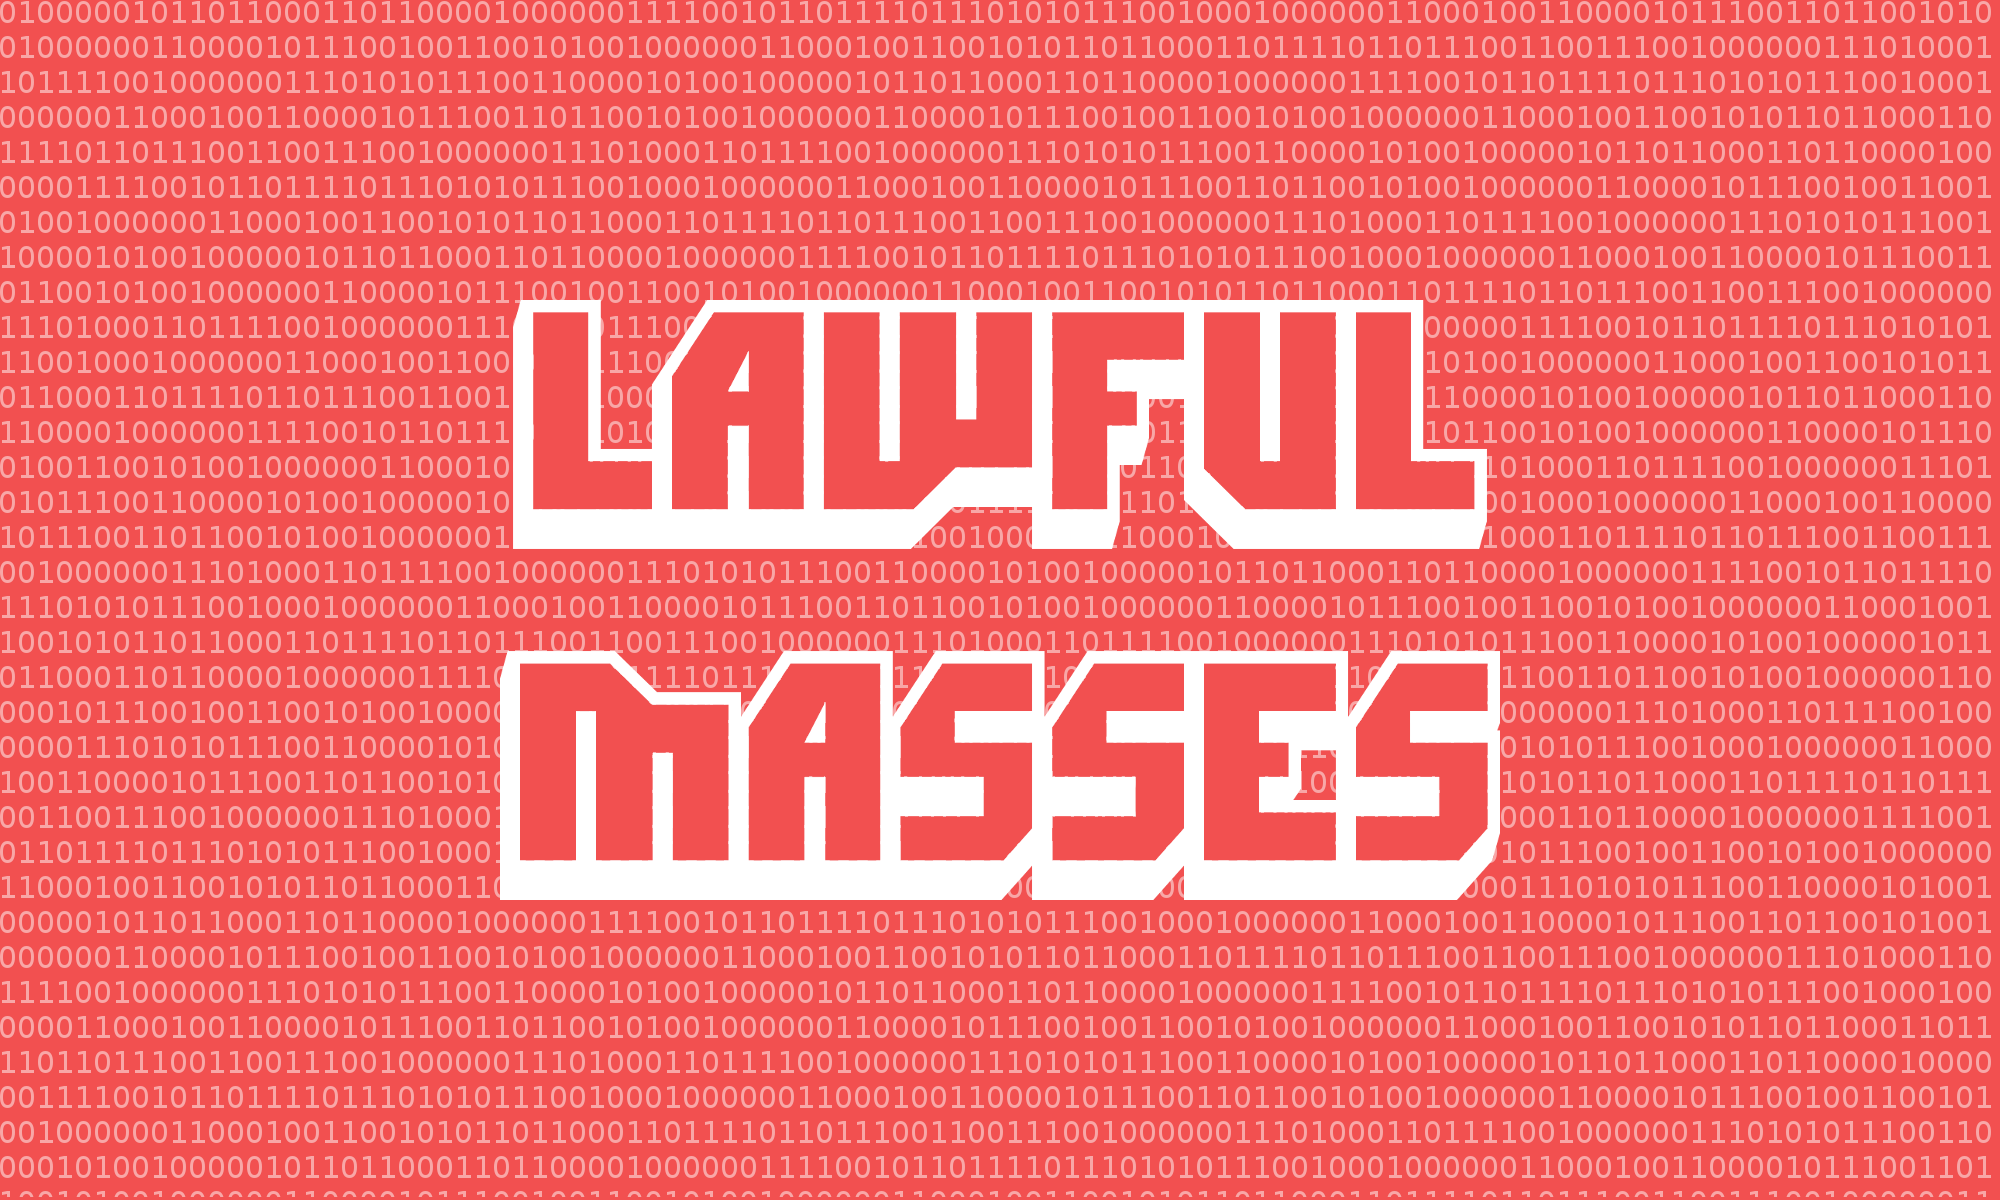 Lawful Masses